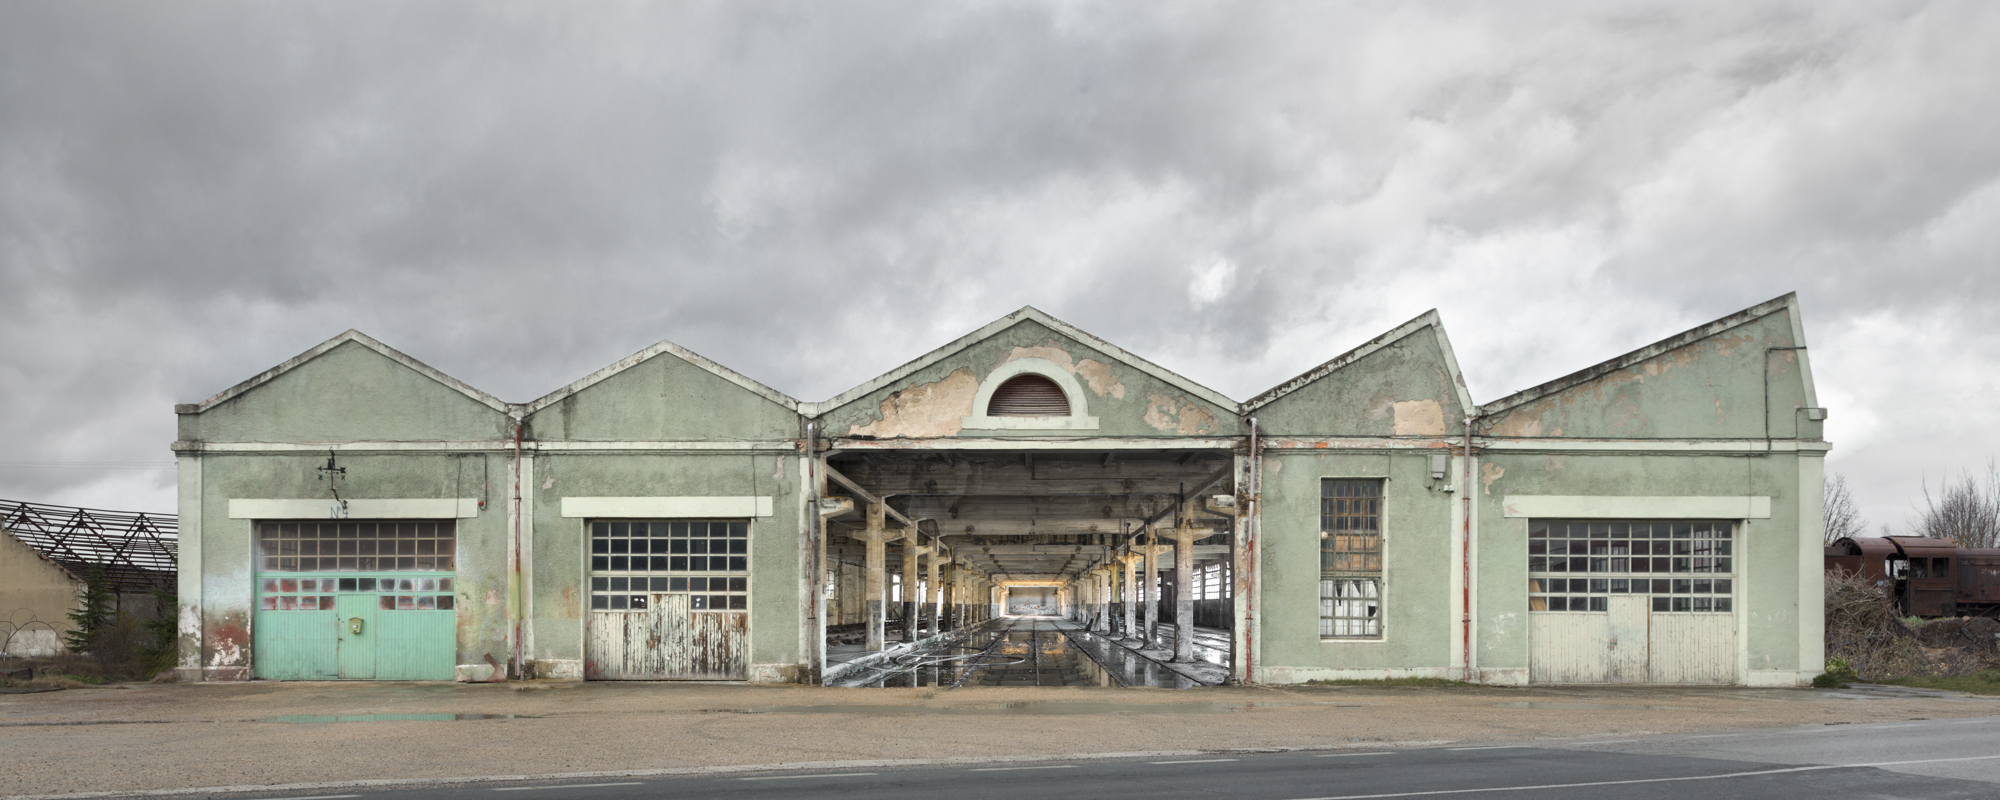 sixties green factory - AVAILABLE NOWHERE - cesar azcarate, photography